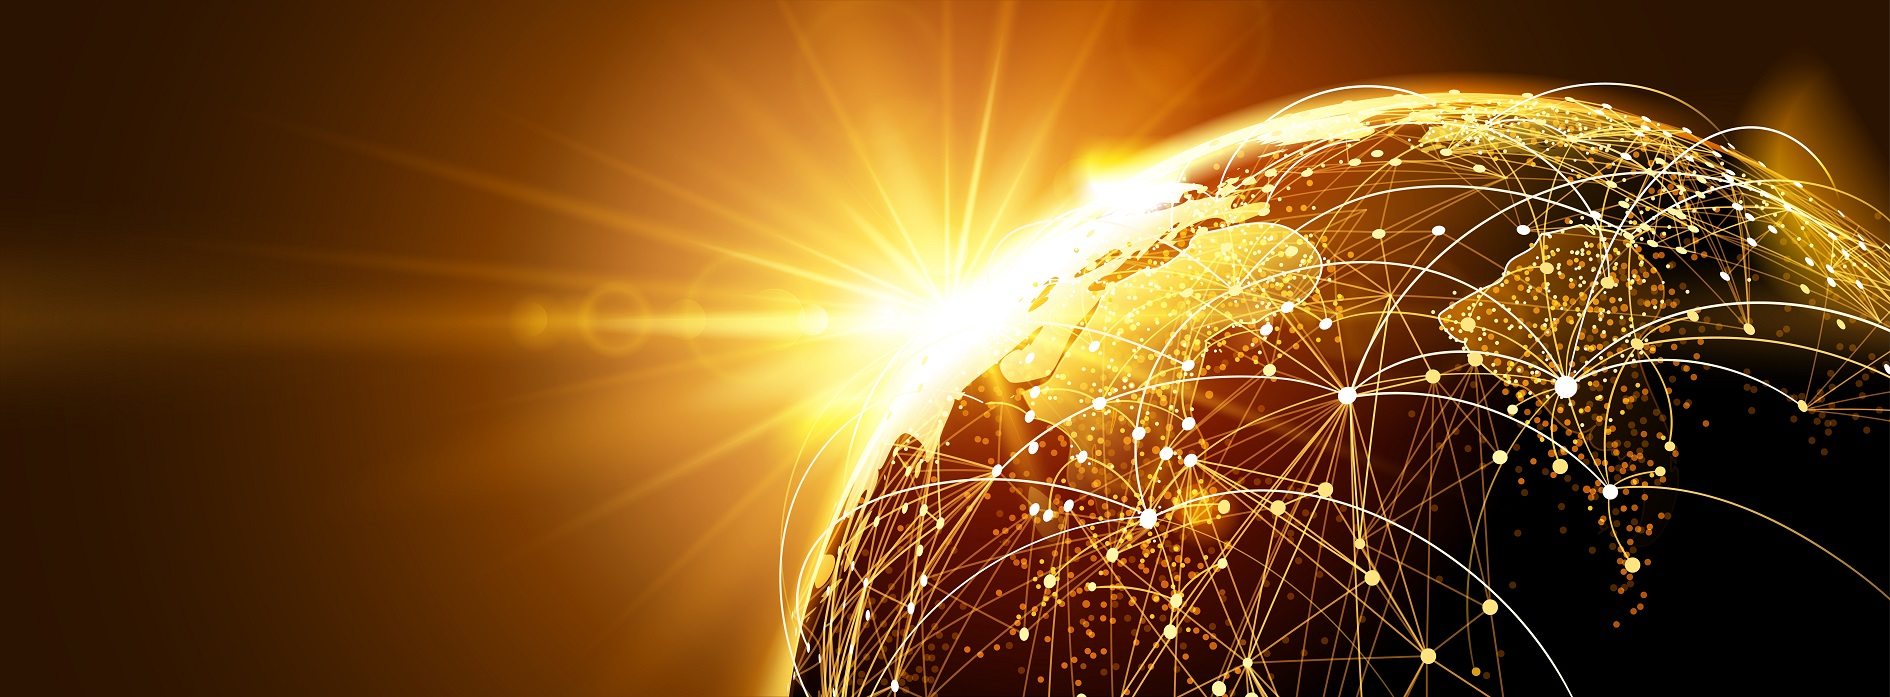 Highly,Detailed,Planet,Earth,With,Sunrise.,Global,Network.,Vector,Illustration